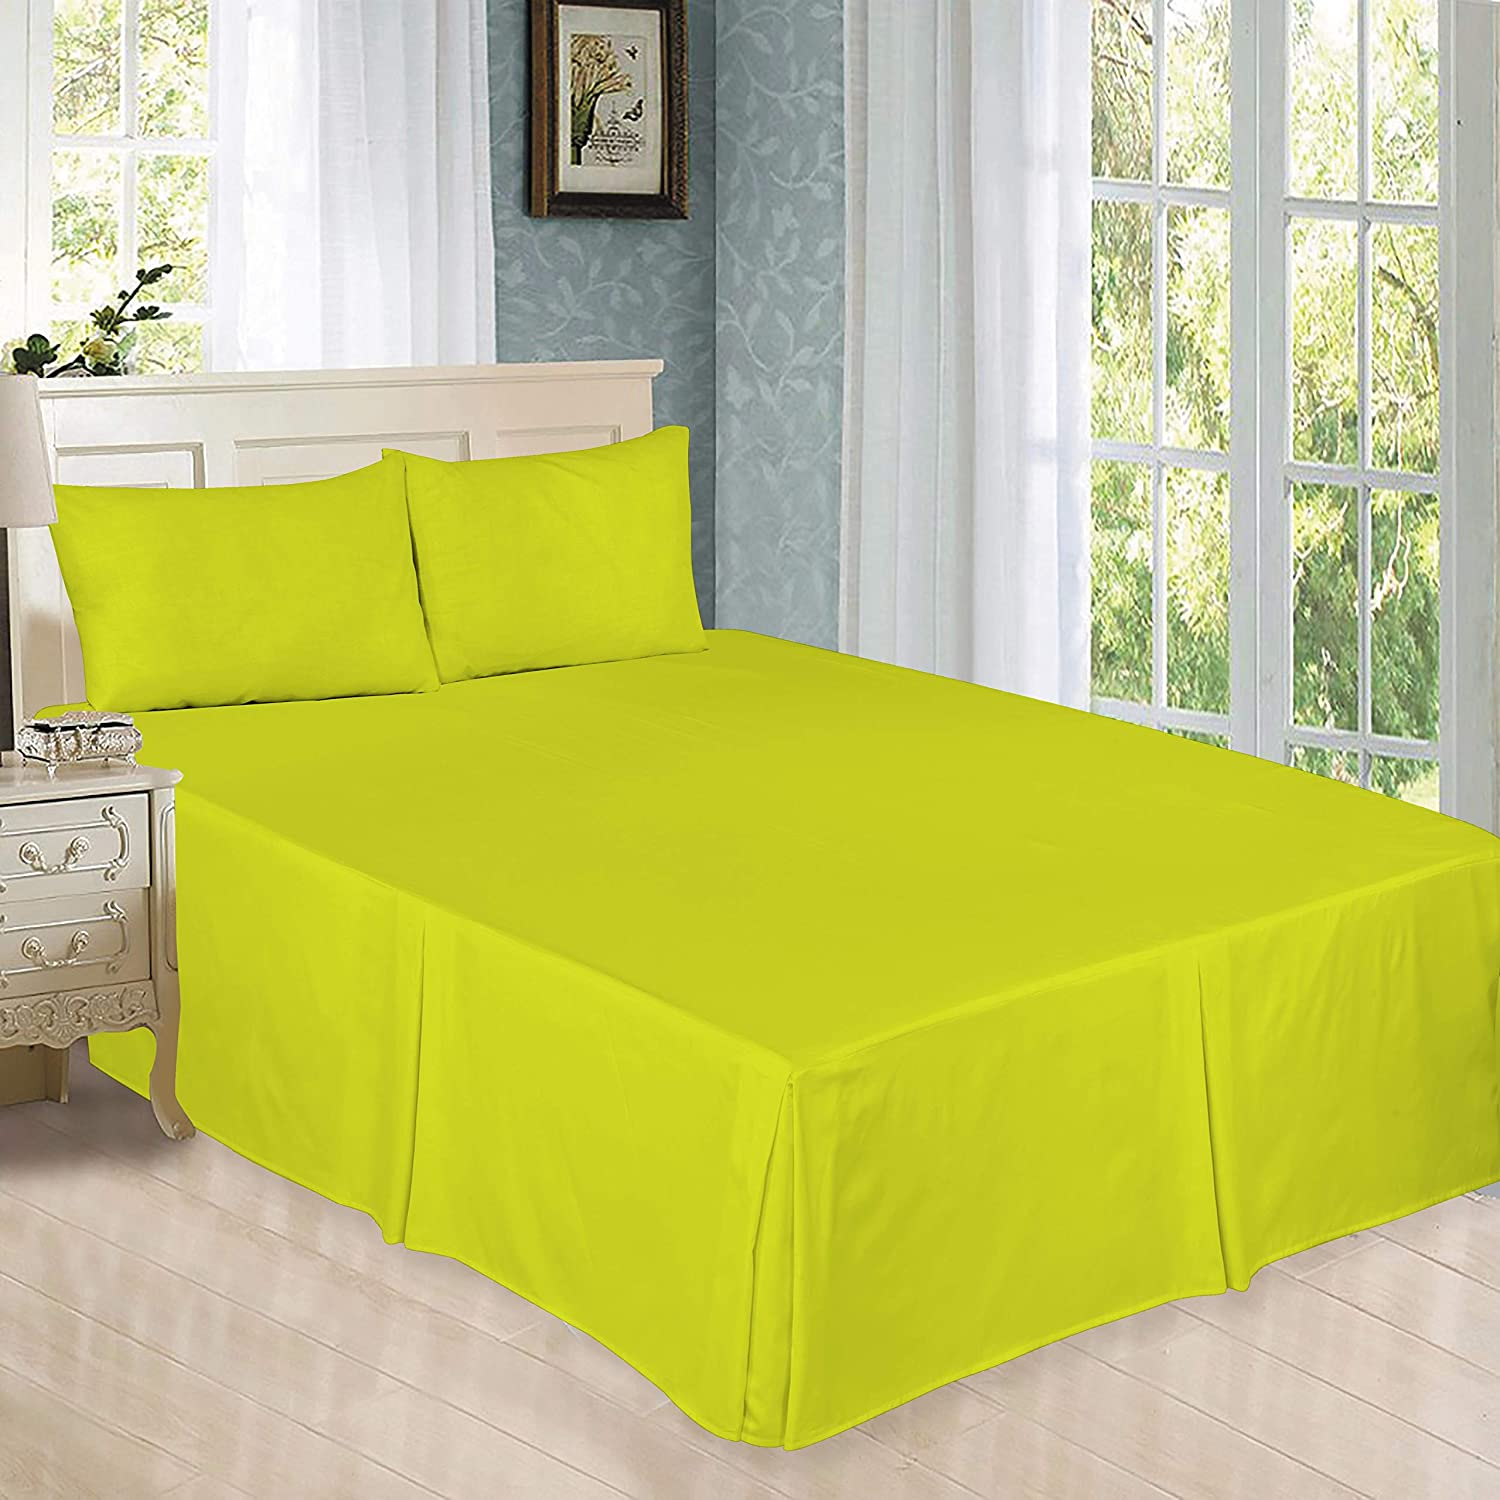 ARLINENS Luxury Plain Dyed Poly Cotton Platform Base Valance Sheet in Following Colours and Sizes (DOUBLE, BLACK)